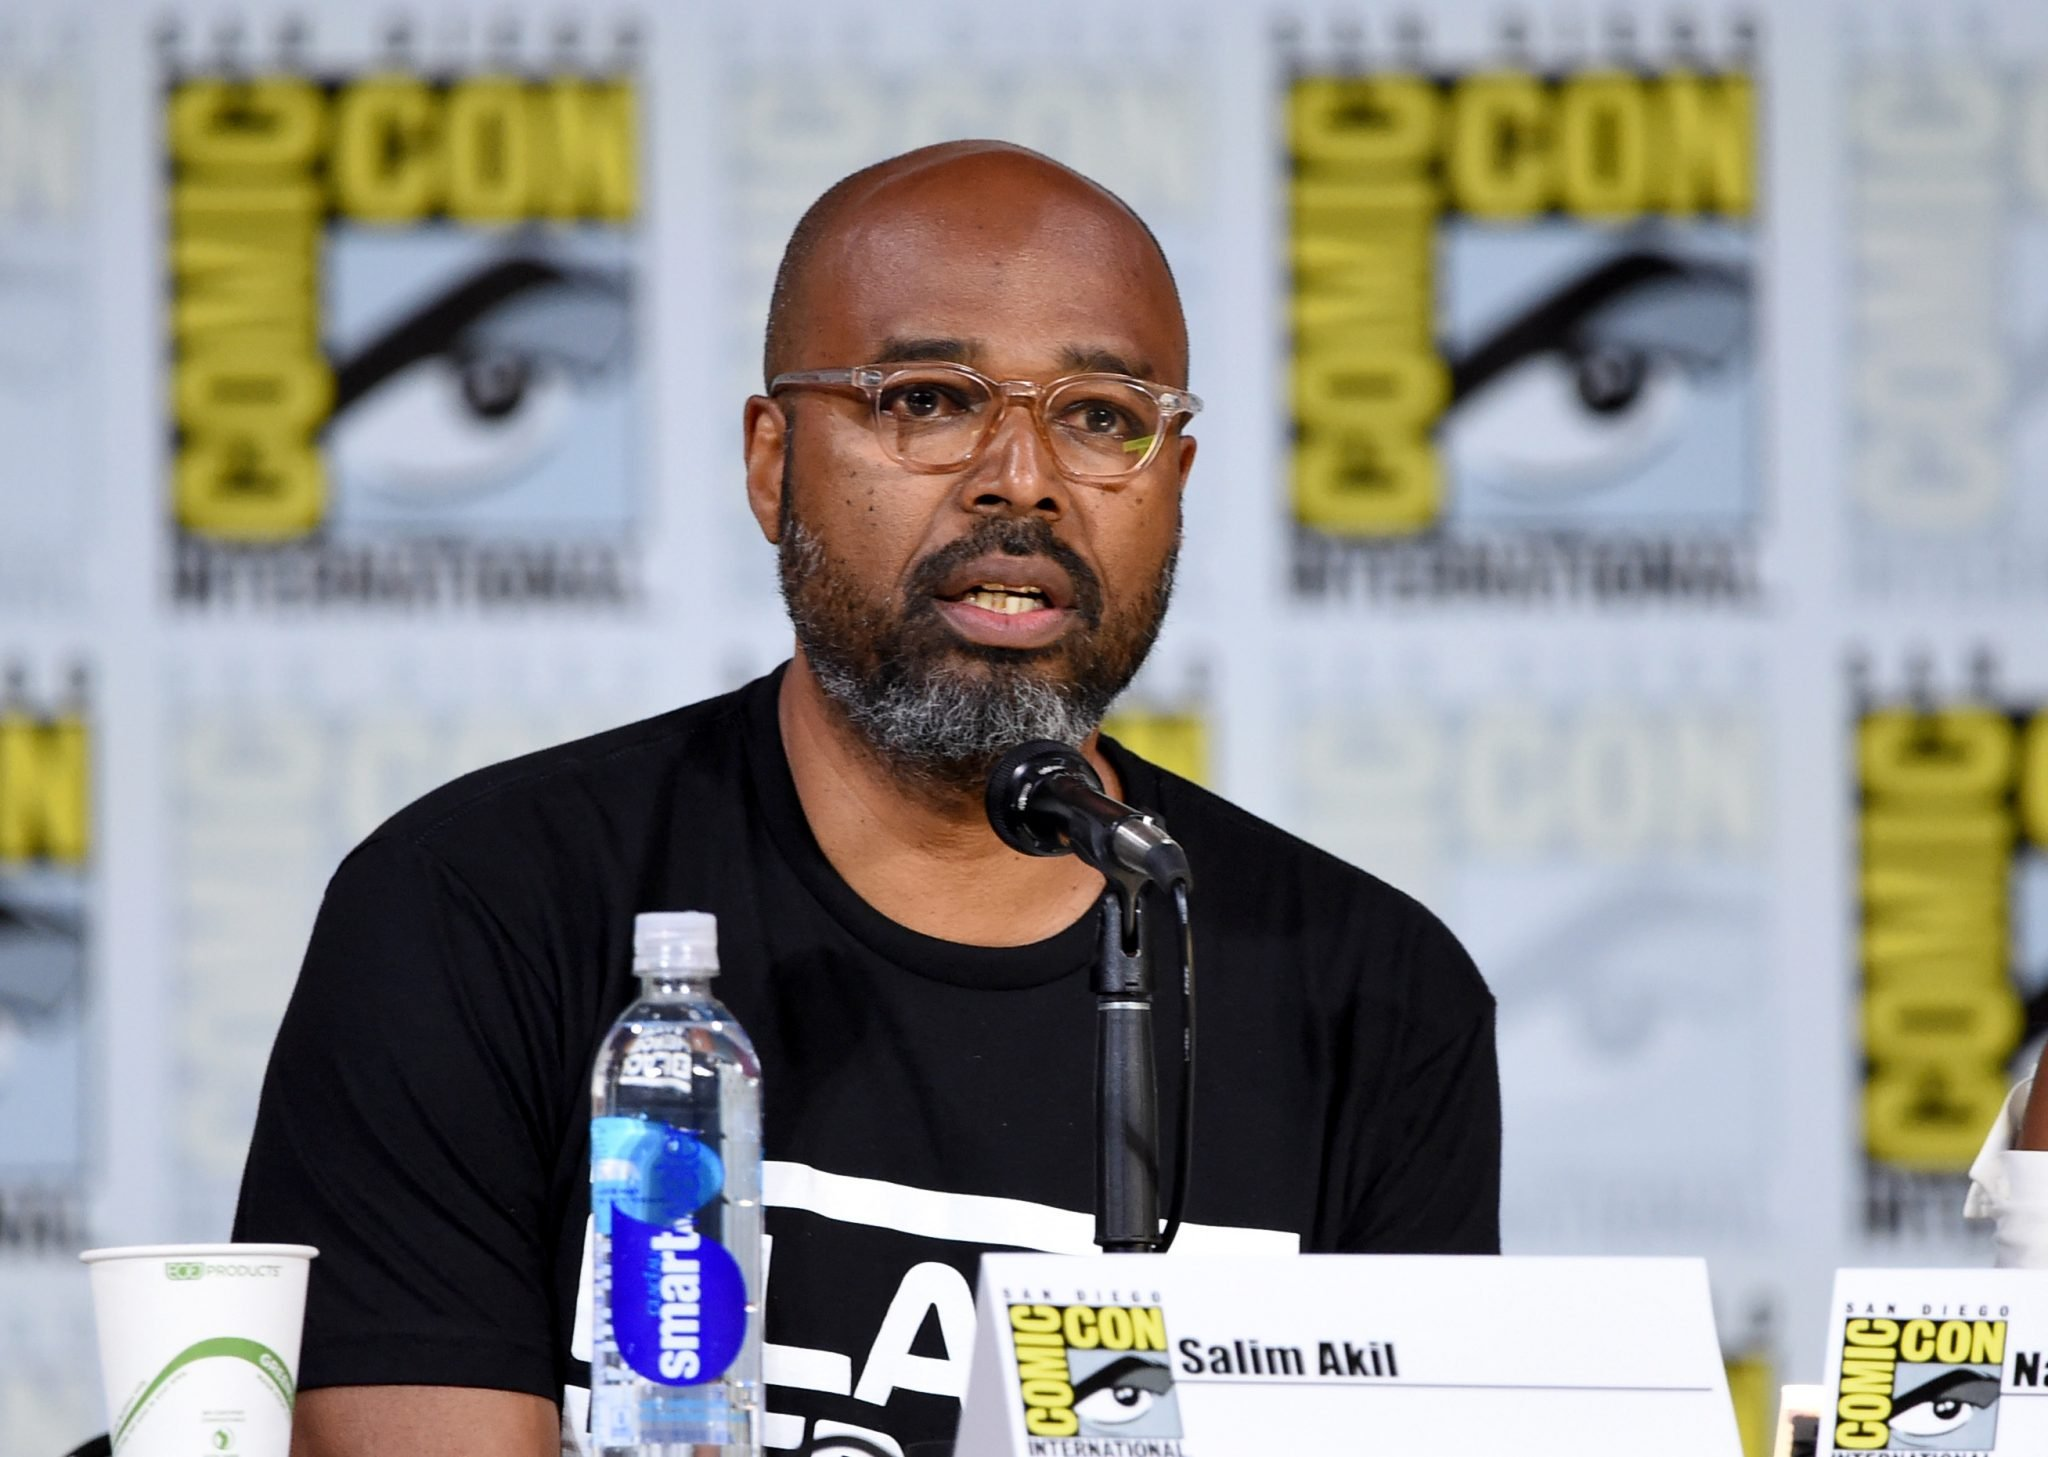 Salim Akil at the 2017 San Diego Comic Con